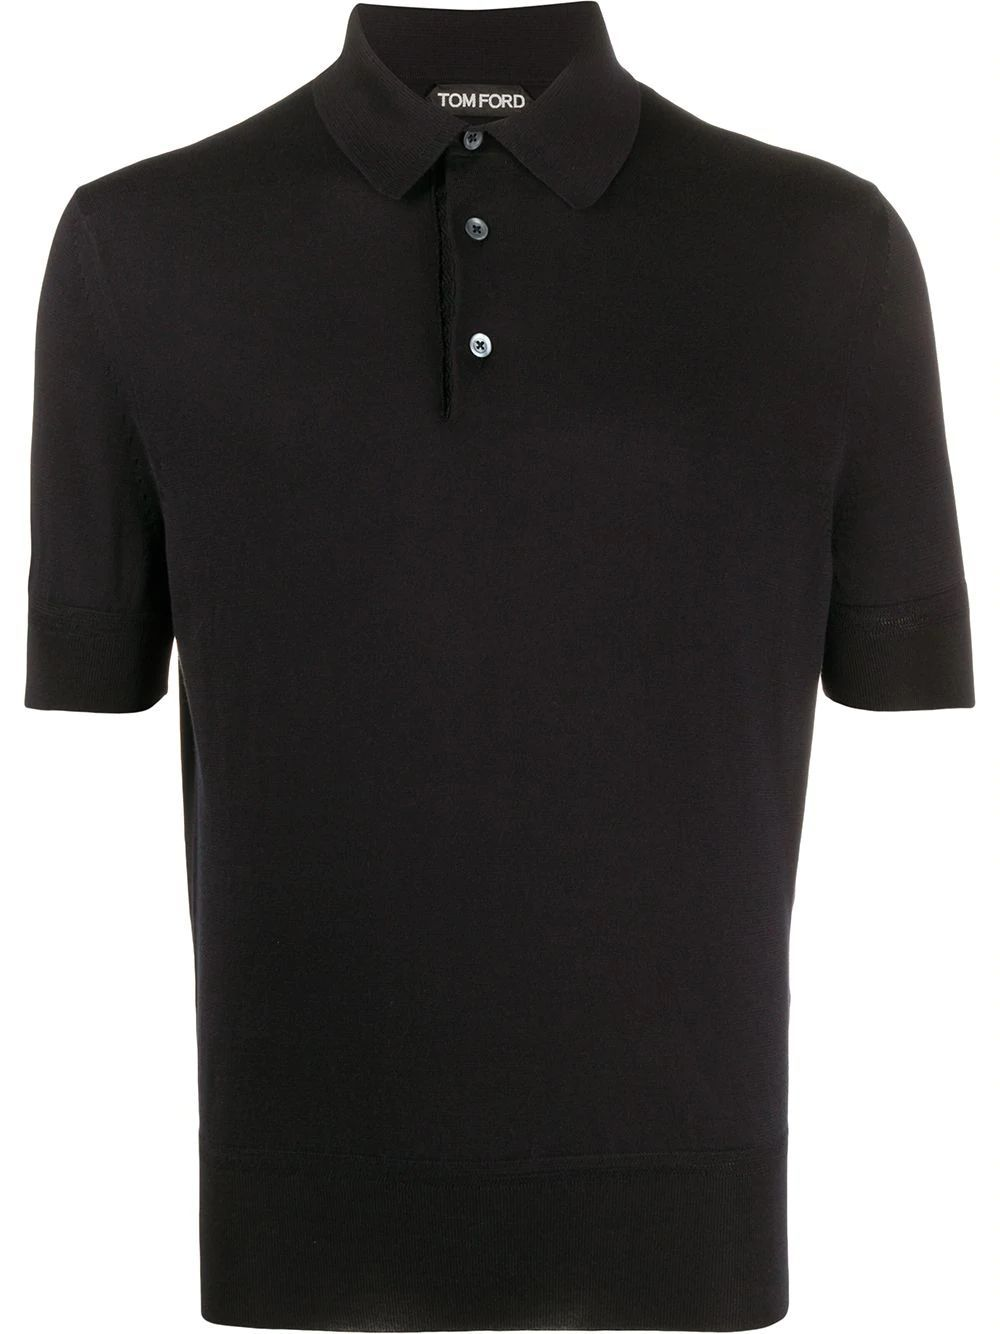 TOM FORD MEN'S TFKC33BUC00K09 BLACK COTTON POLO SHIRT